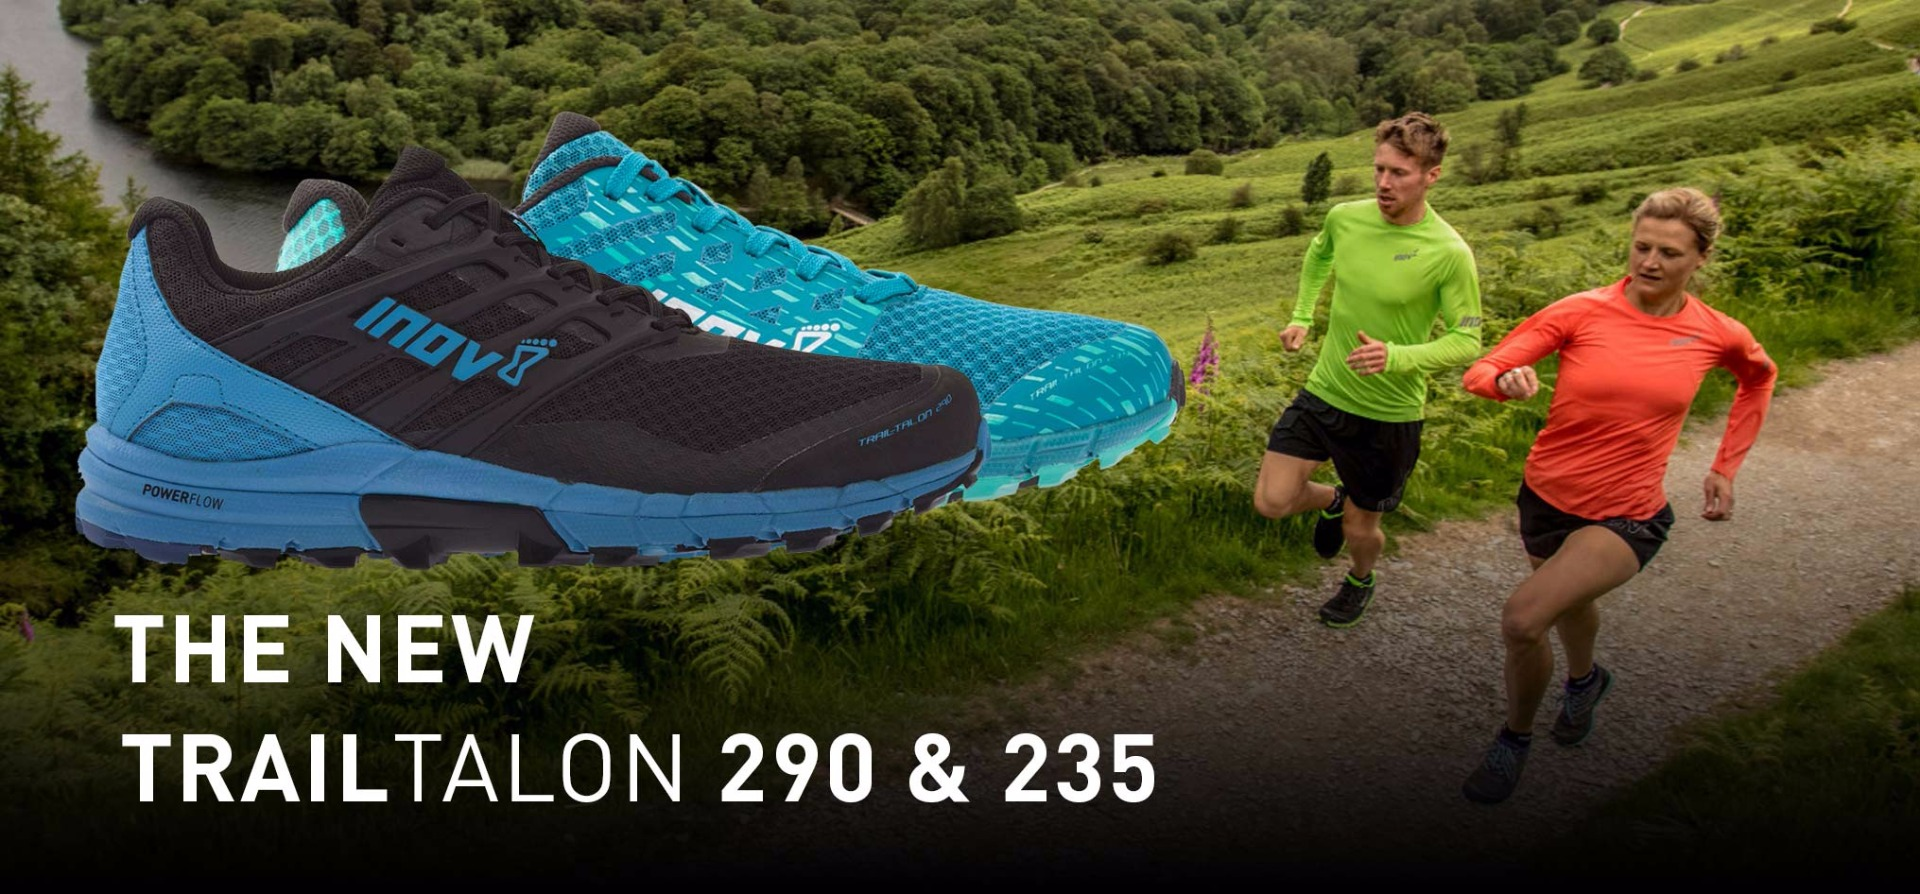 What do you do when you have worldwide success with a trail running shoe   Rest on your laurels or strive to make it even better  We re inov-8… the  answer is ... b85c754819f